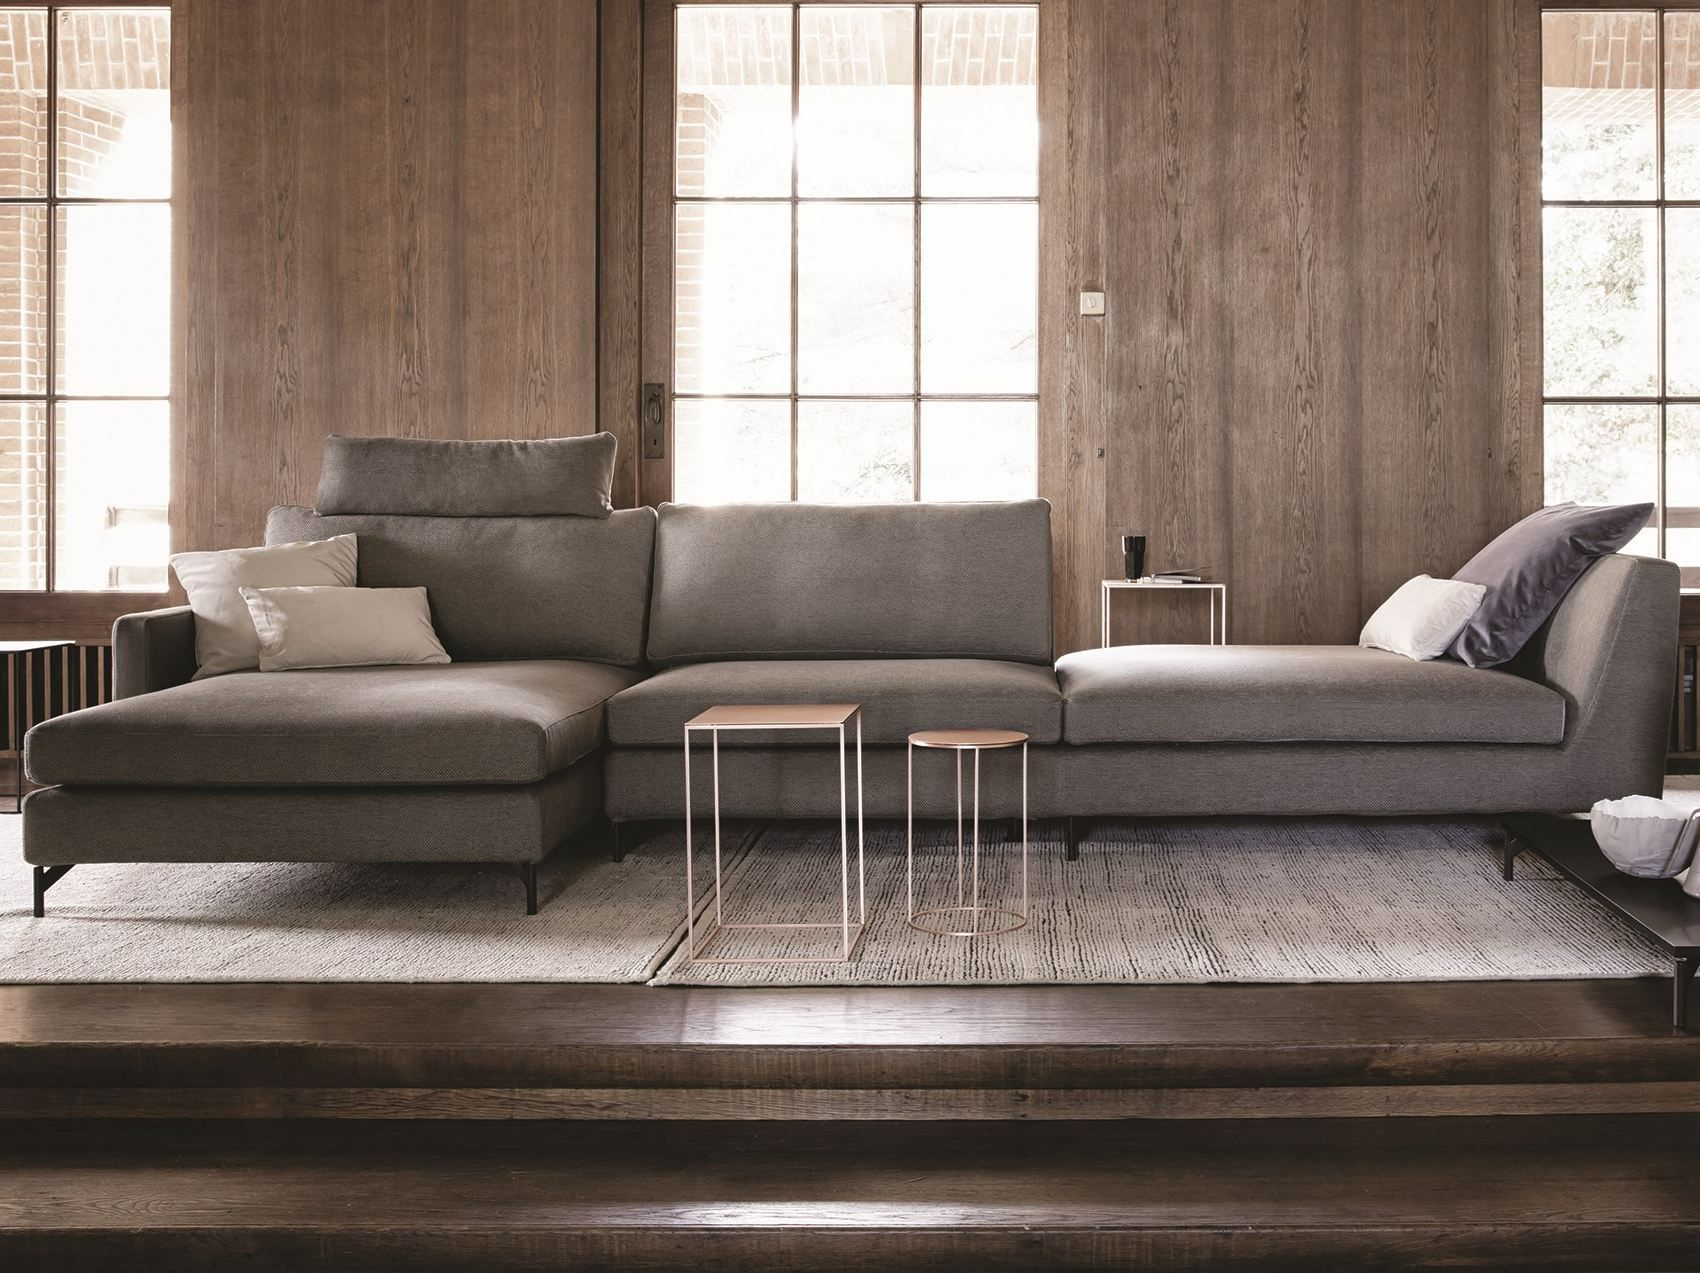 Amazing 525 Nordic Sectional Sofa By Vibieffe Design Gianluigi Alphanode Cool Chair Designs And Ideas Alphanodeonline